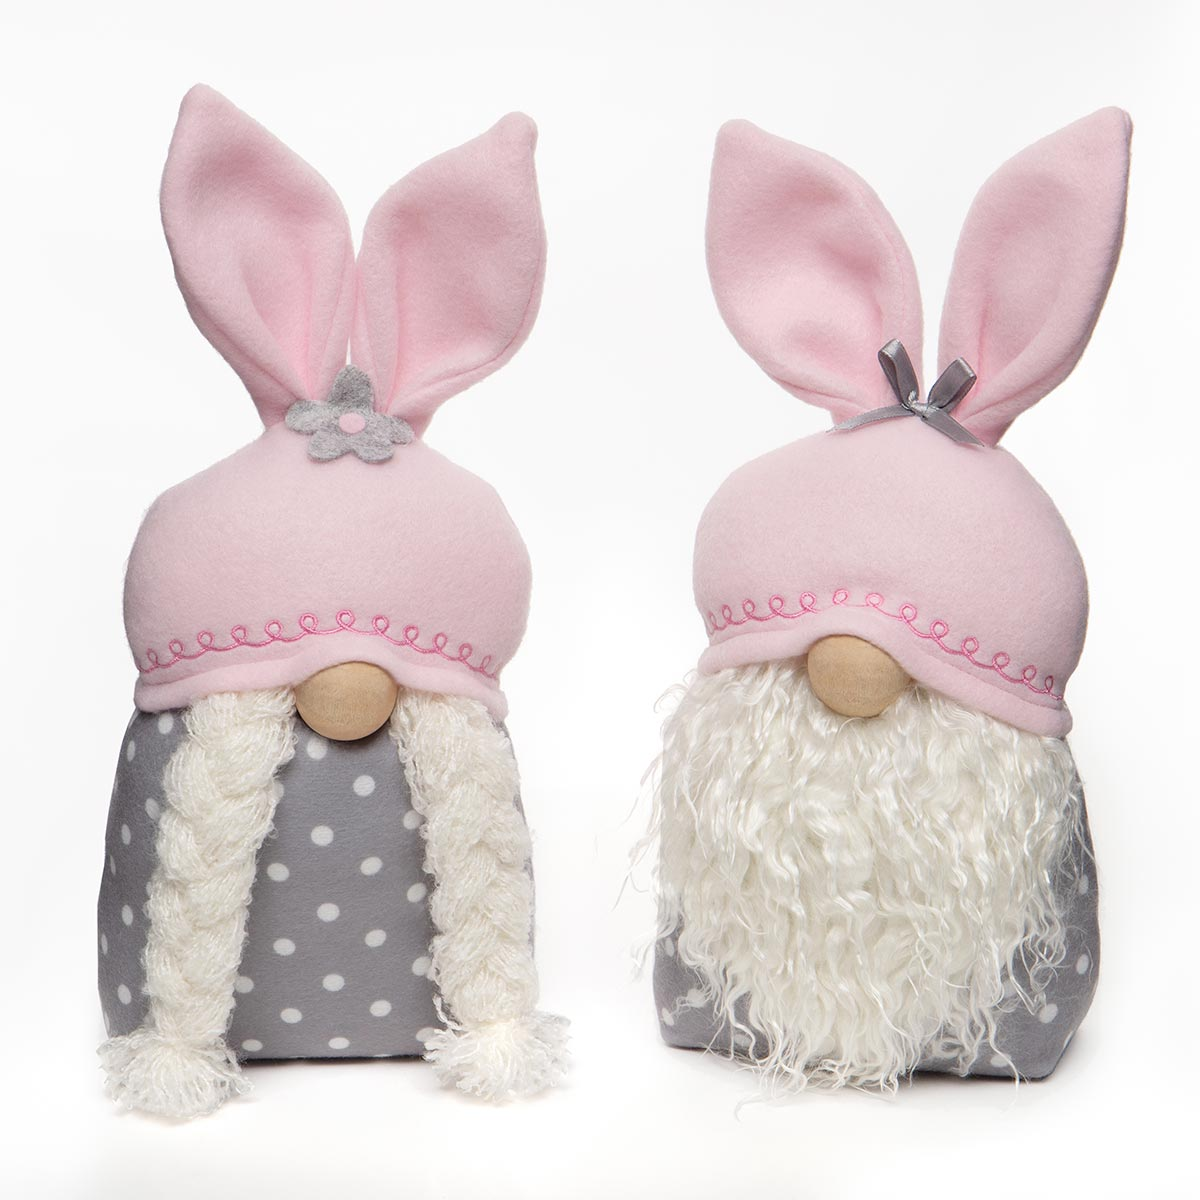 BUTTON AND BOWS BUNNY GNOME WITH PINK BUNNY EARS, WOOD NOSE,